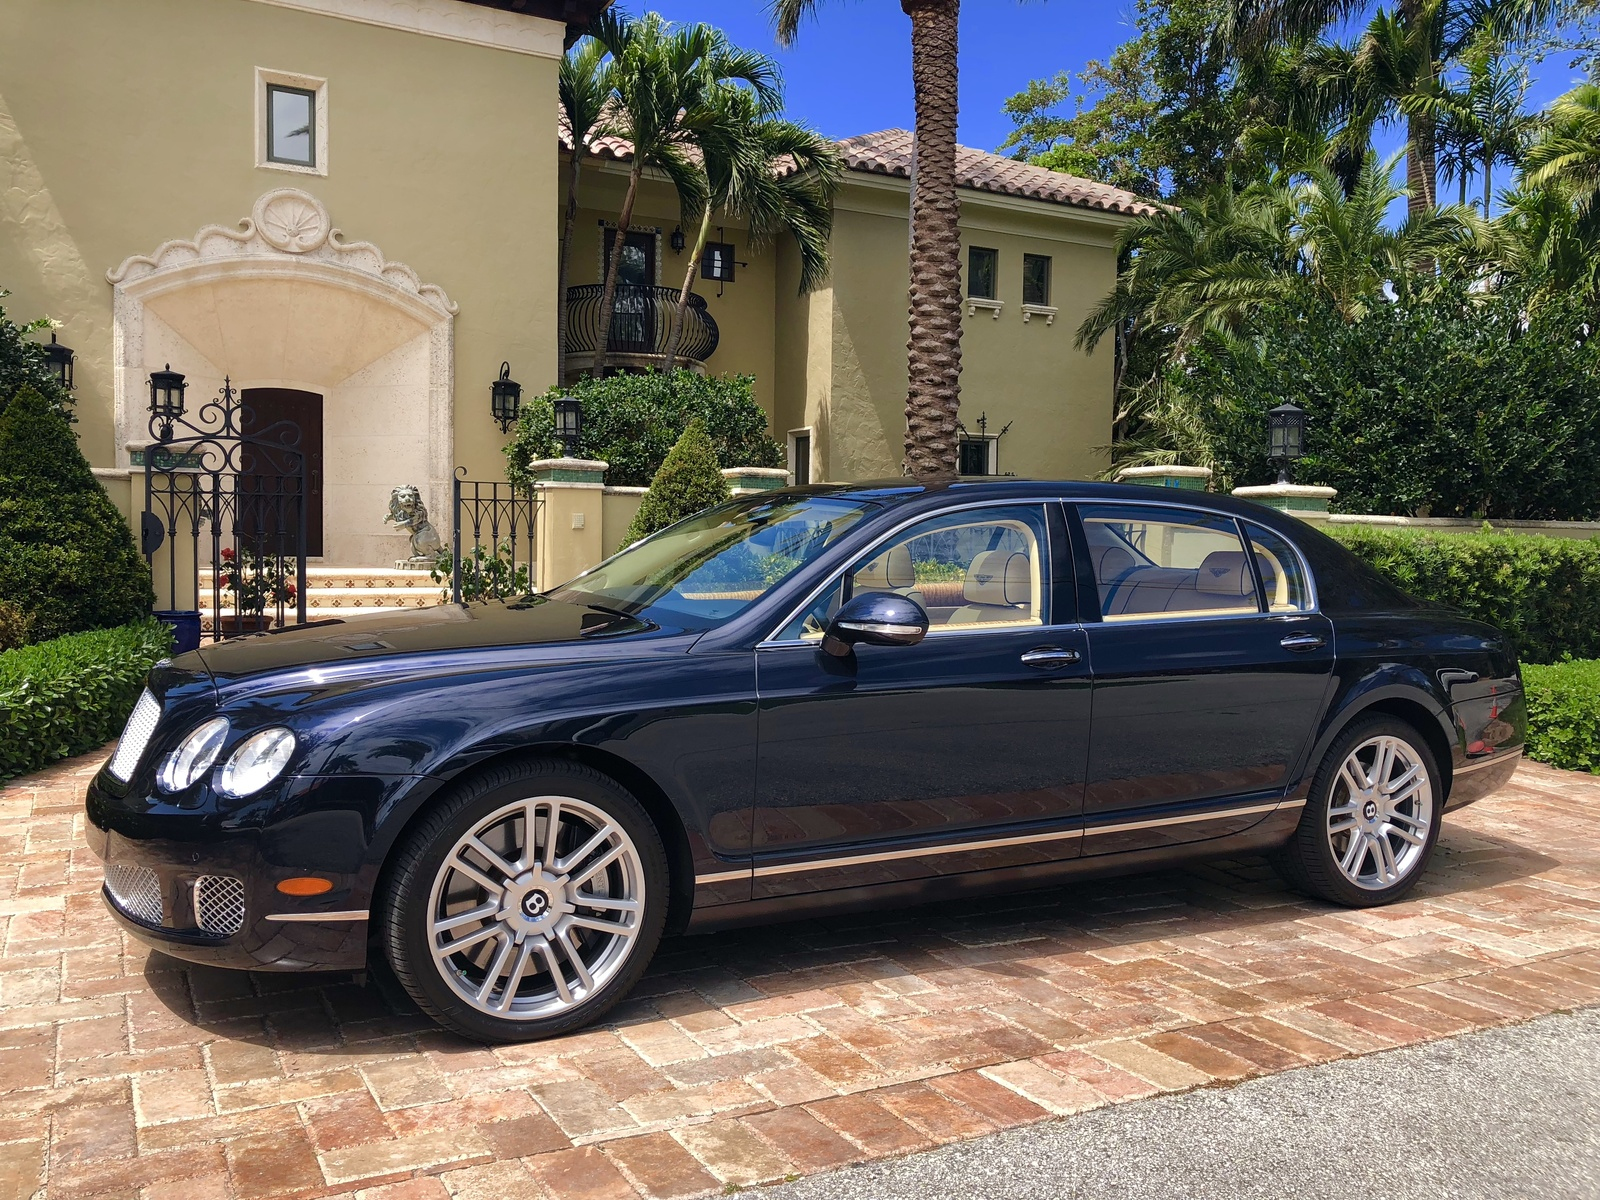 2013 Bentley Continental Flying Spur Overview CarGurus